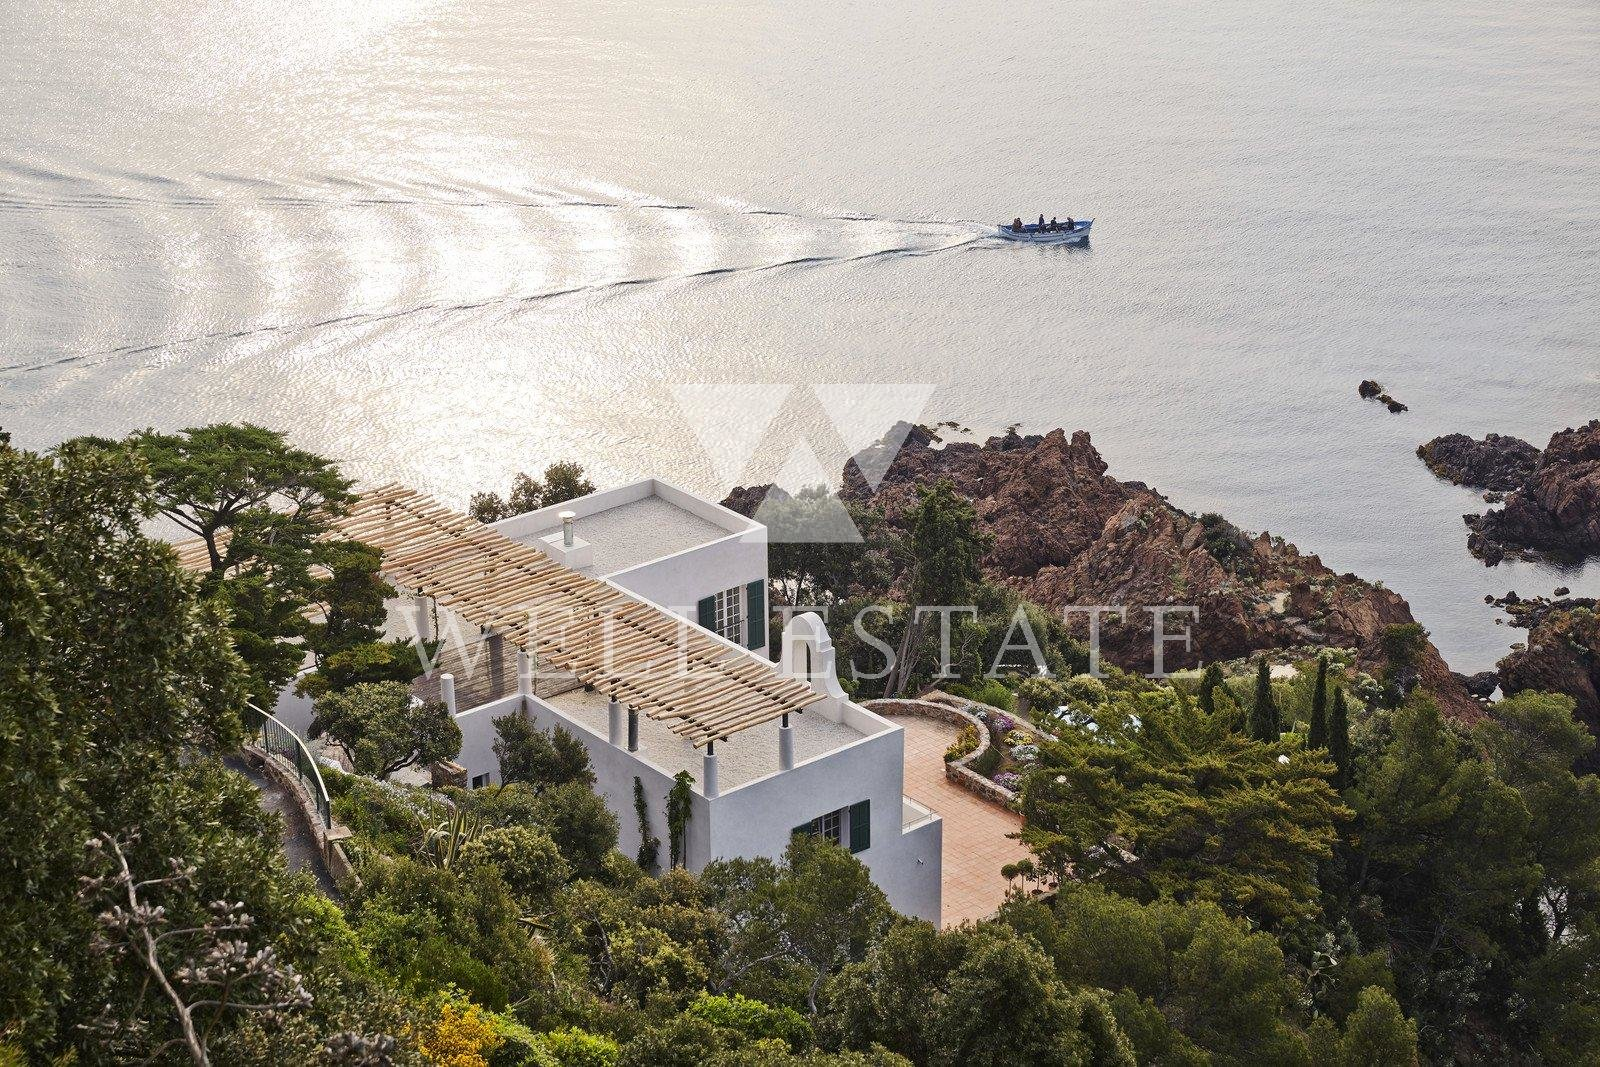 FOR RENT THEOULE SUR MER ARCHITECT-DESIGNED BEACH FRONF VILLA 500M2 WITH SWIMMING POOL ON A PLOT OF 6000 M2